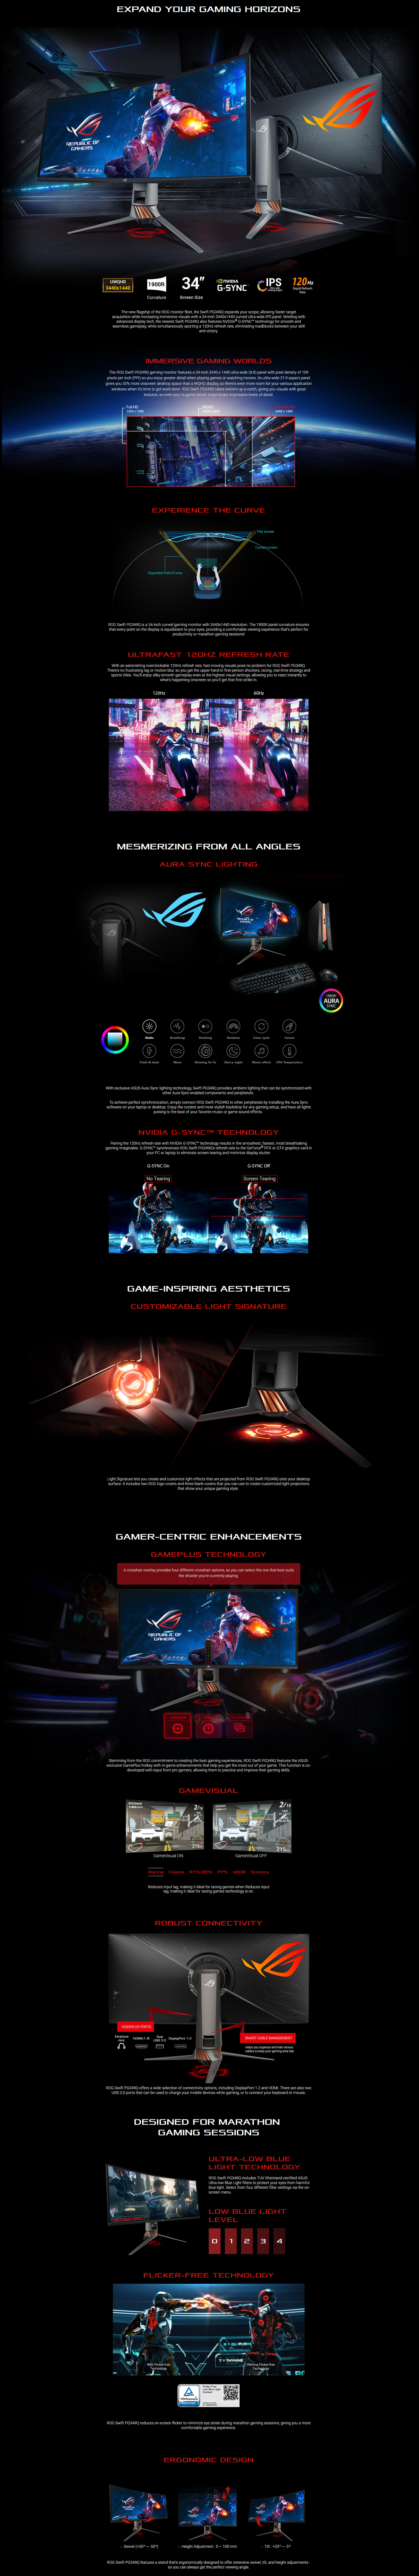 """A large marketing image providing additional information about the product ASUS ROG Swift PG349Q 34"""" Ultrawide QHD G-SYNC Curved 120Hz 4MS IPS LED Gaming Monitor - Additional alt info not provided"""